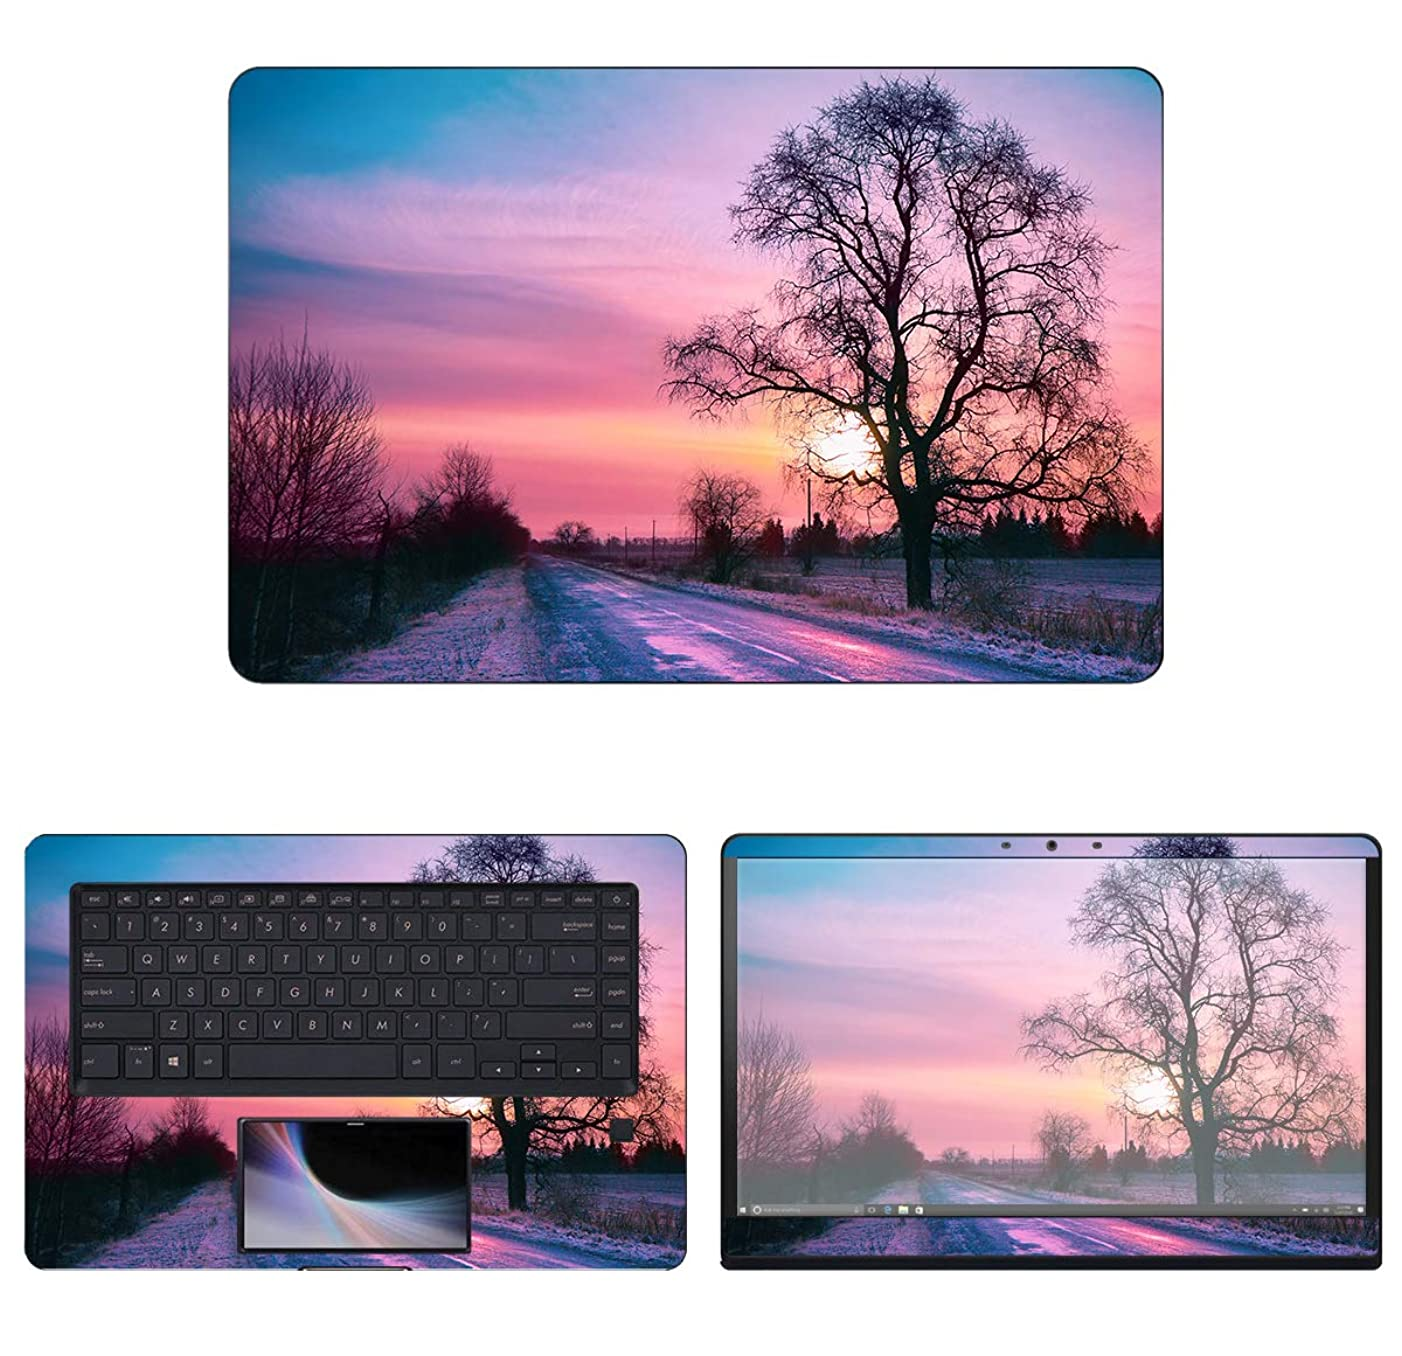 decalrus - Protective Decal Skin Sticker for Asus ZenBook Pro UX580GD (15.6